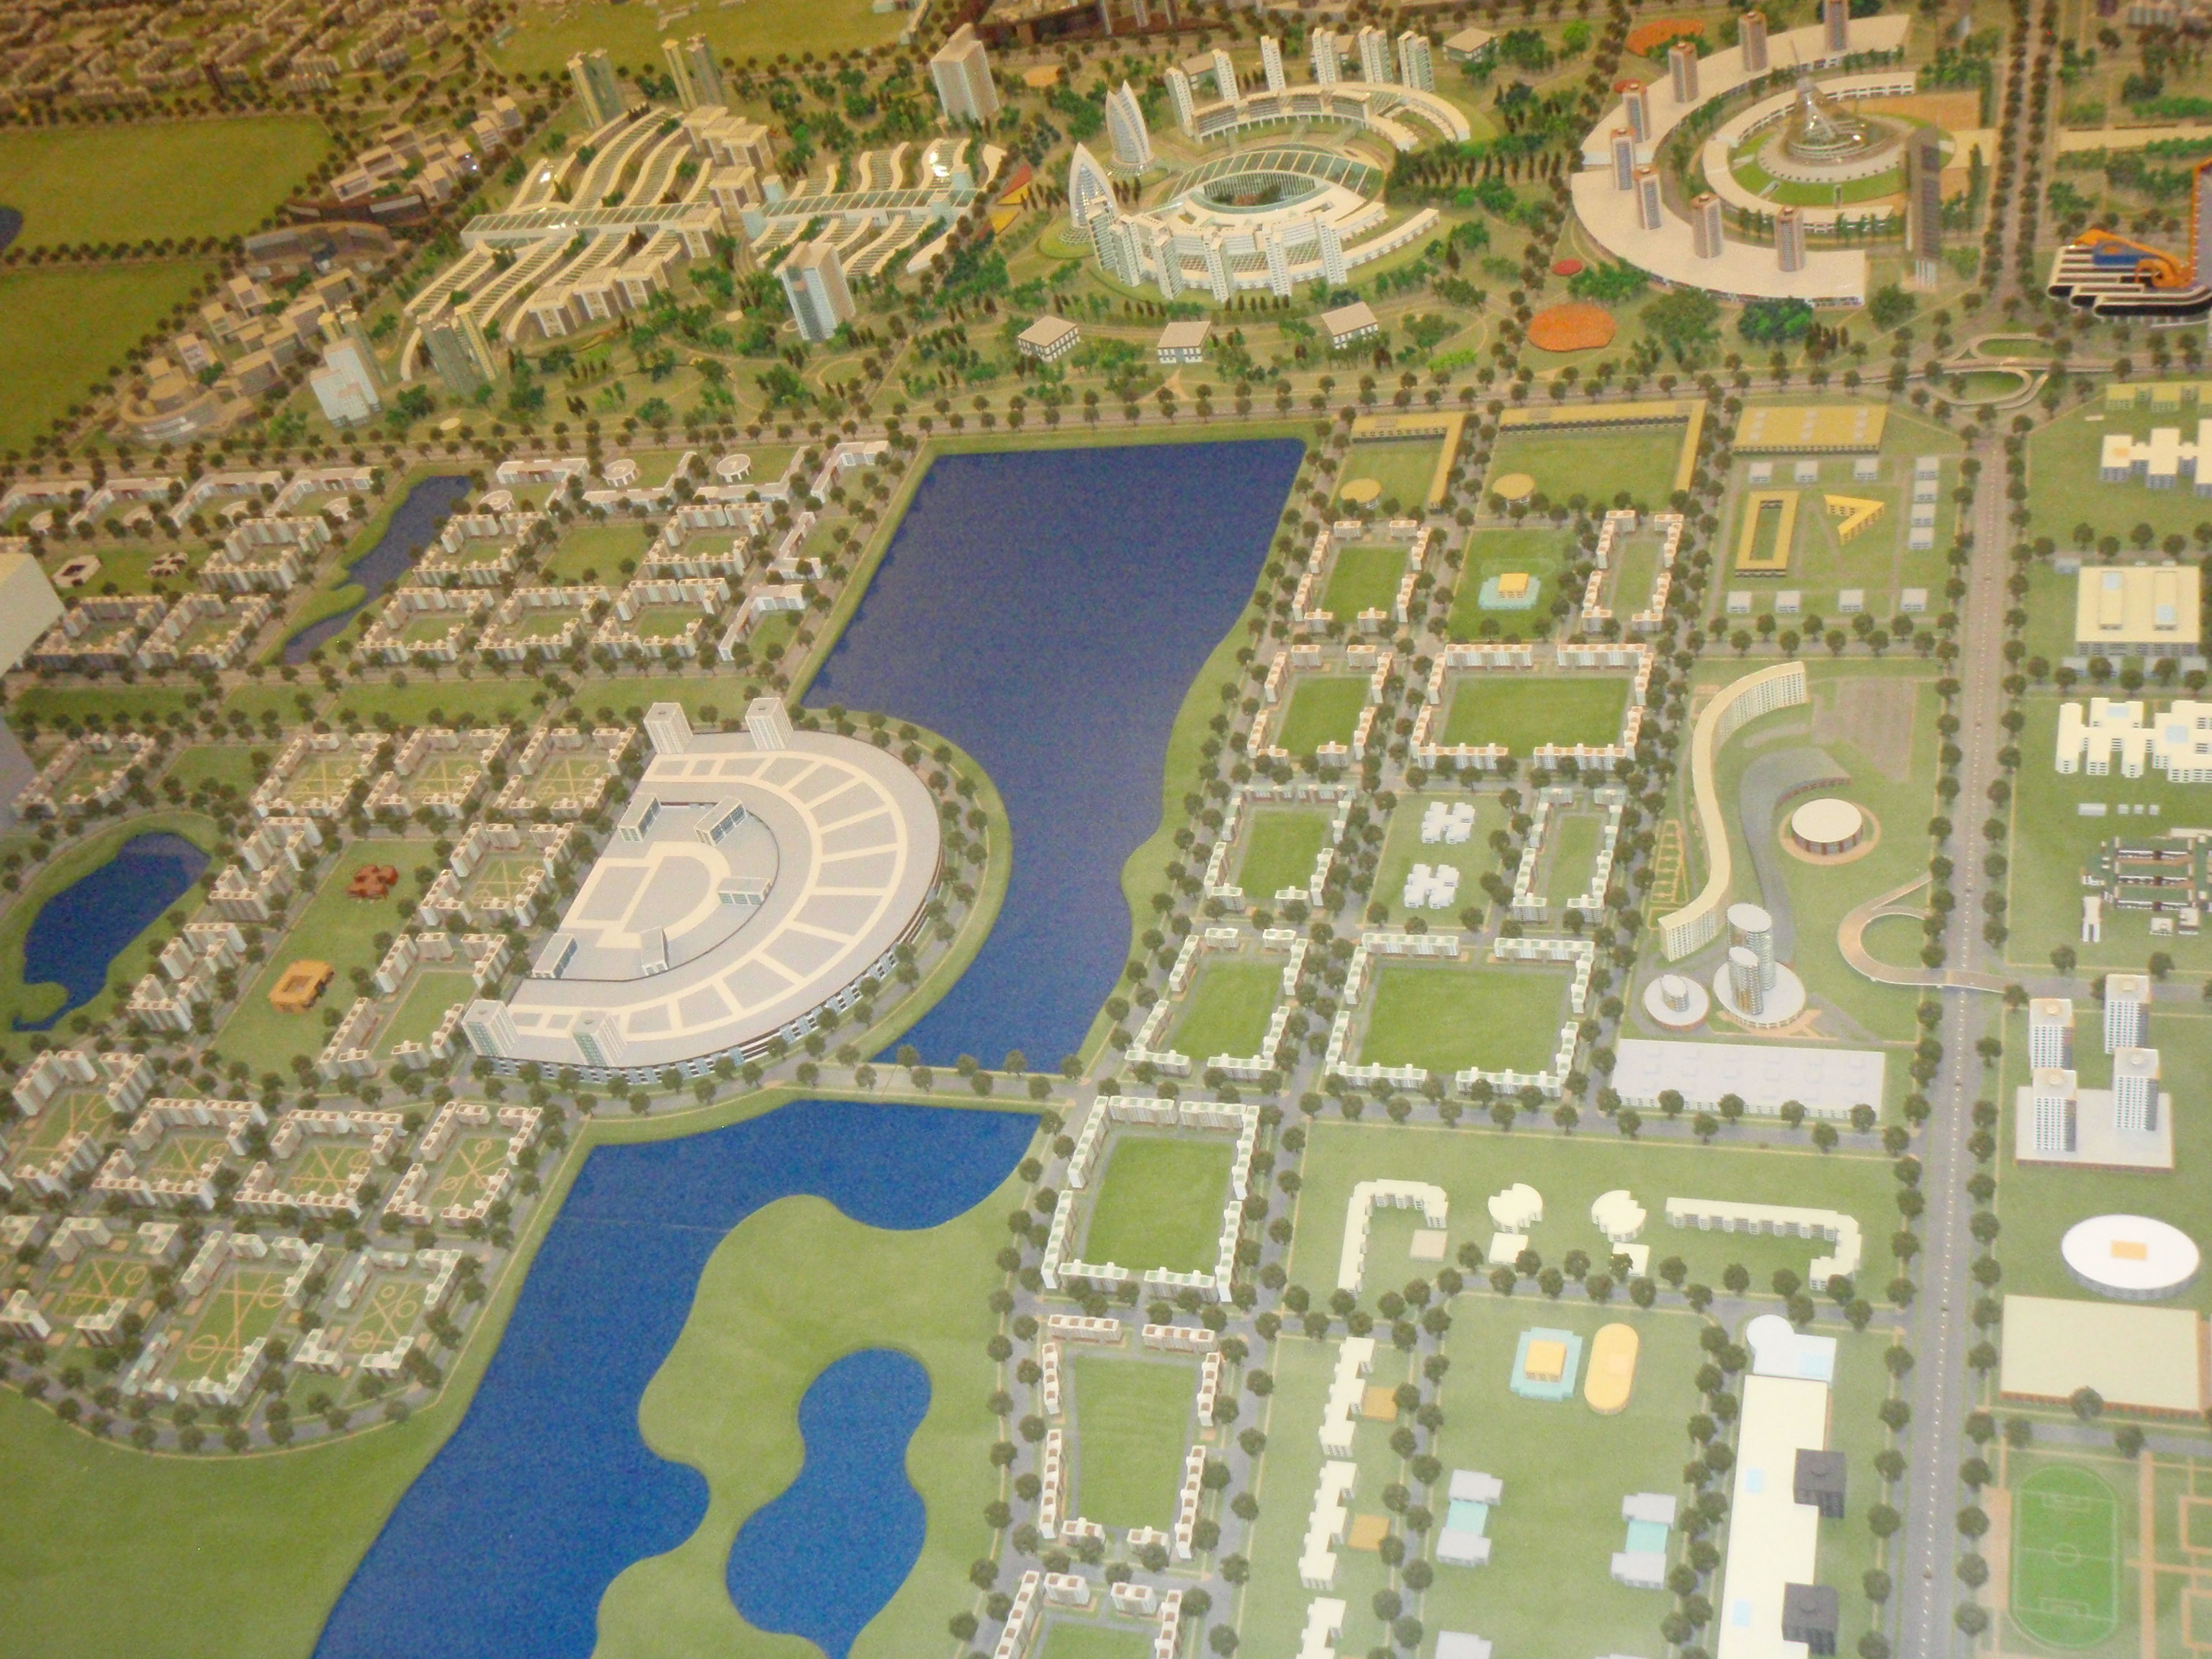 Astana city plan and Charge of the Light Brigade Kazakhnomads